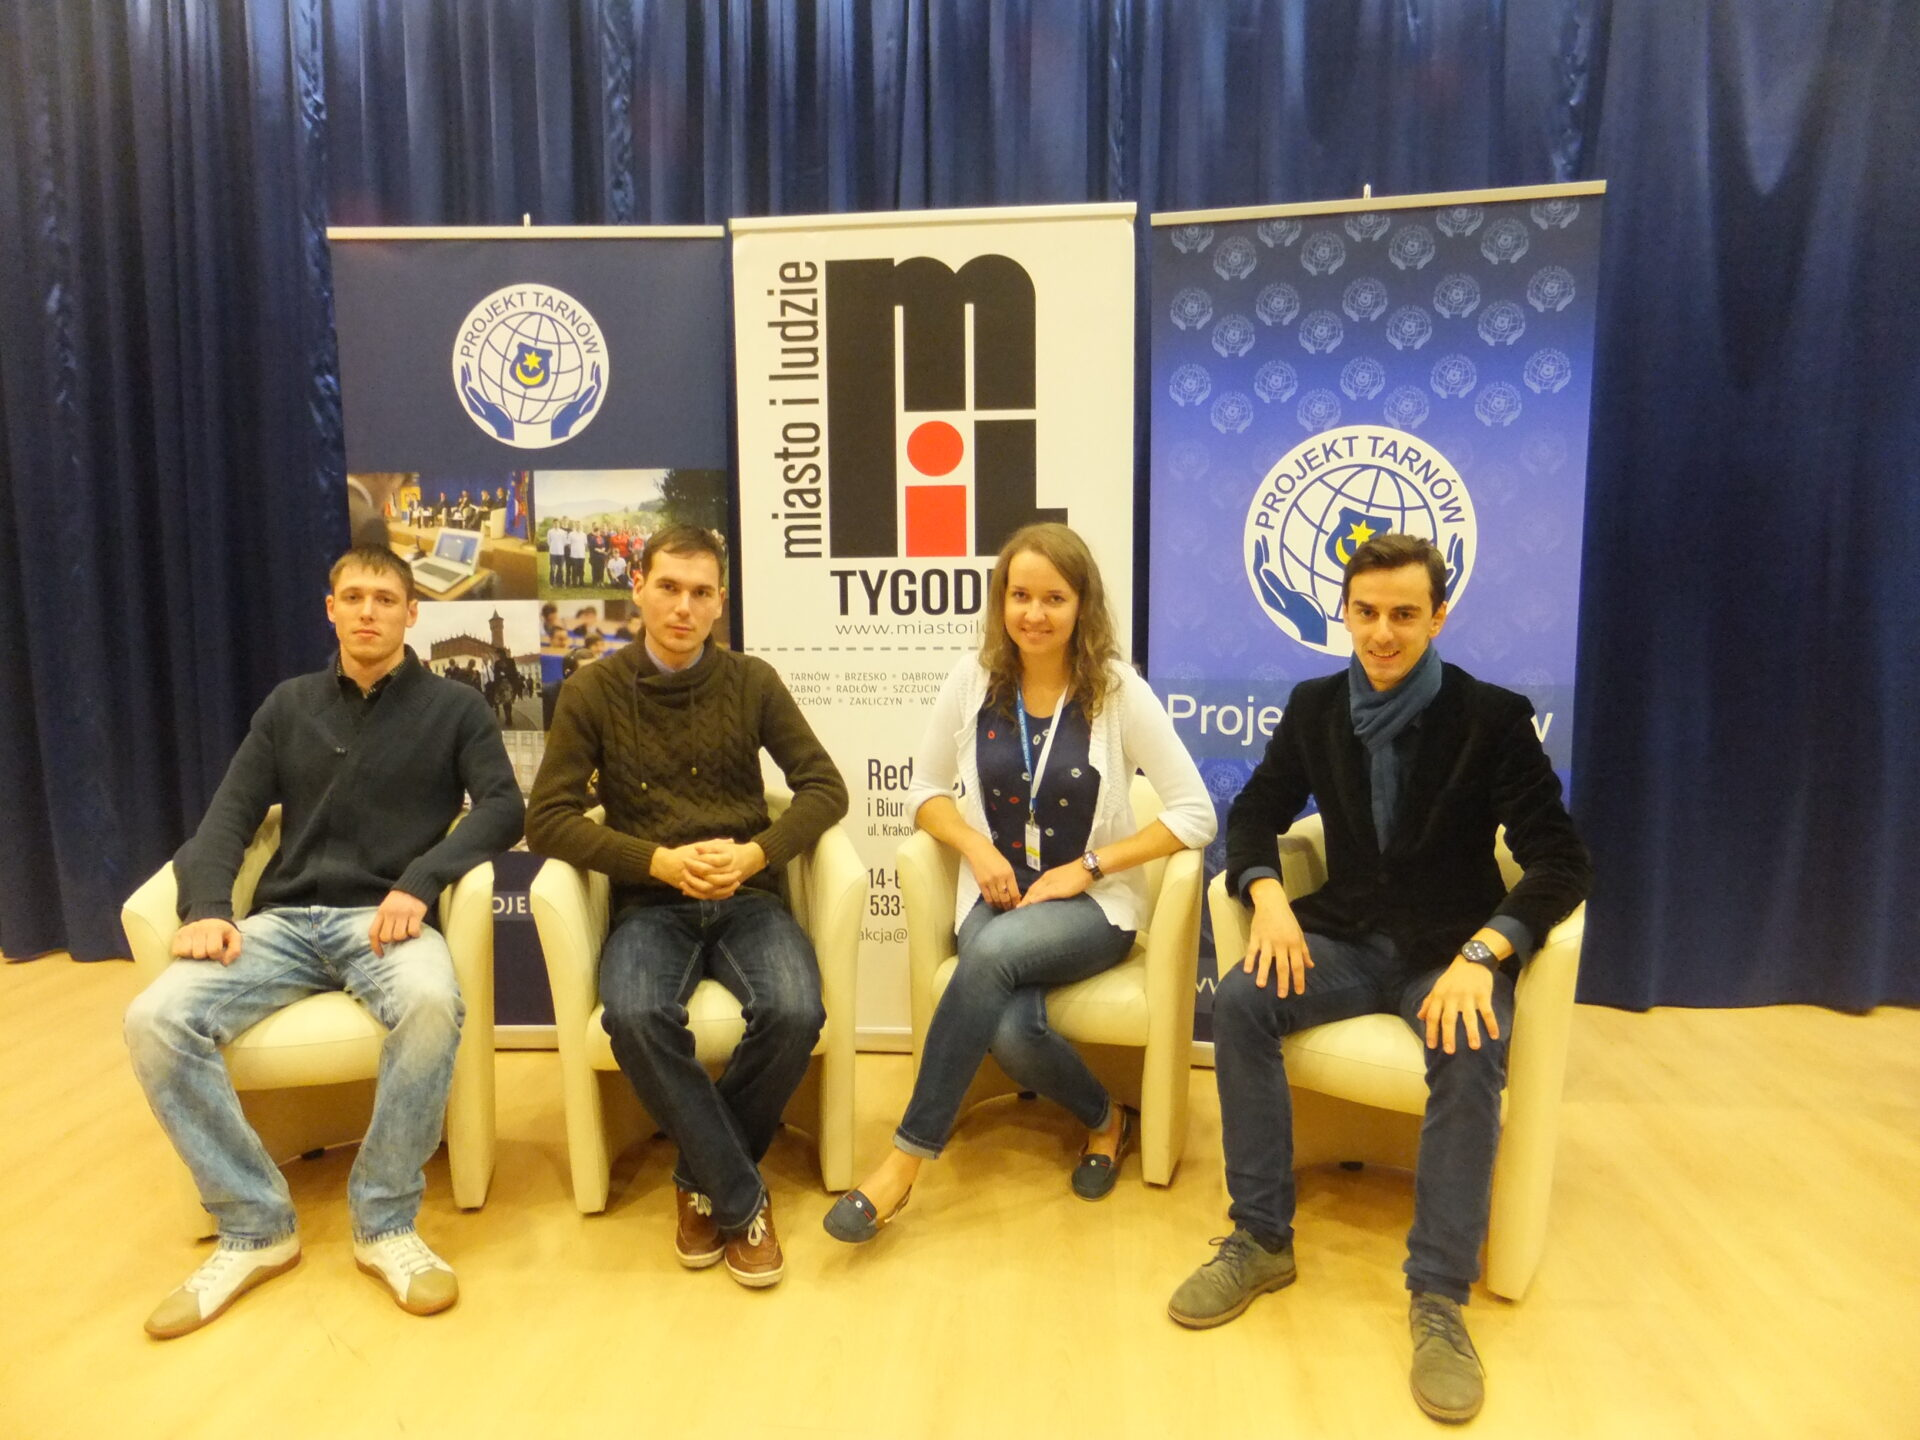 Report from the Central Europe Youth Forum in Tarnów